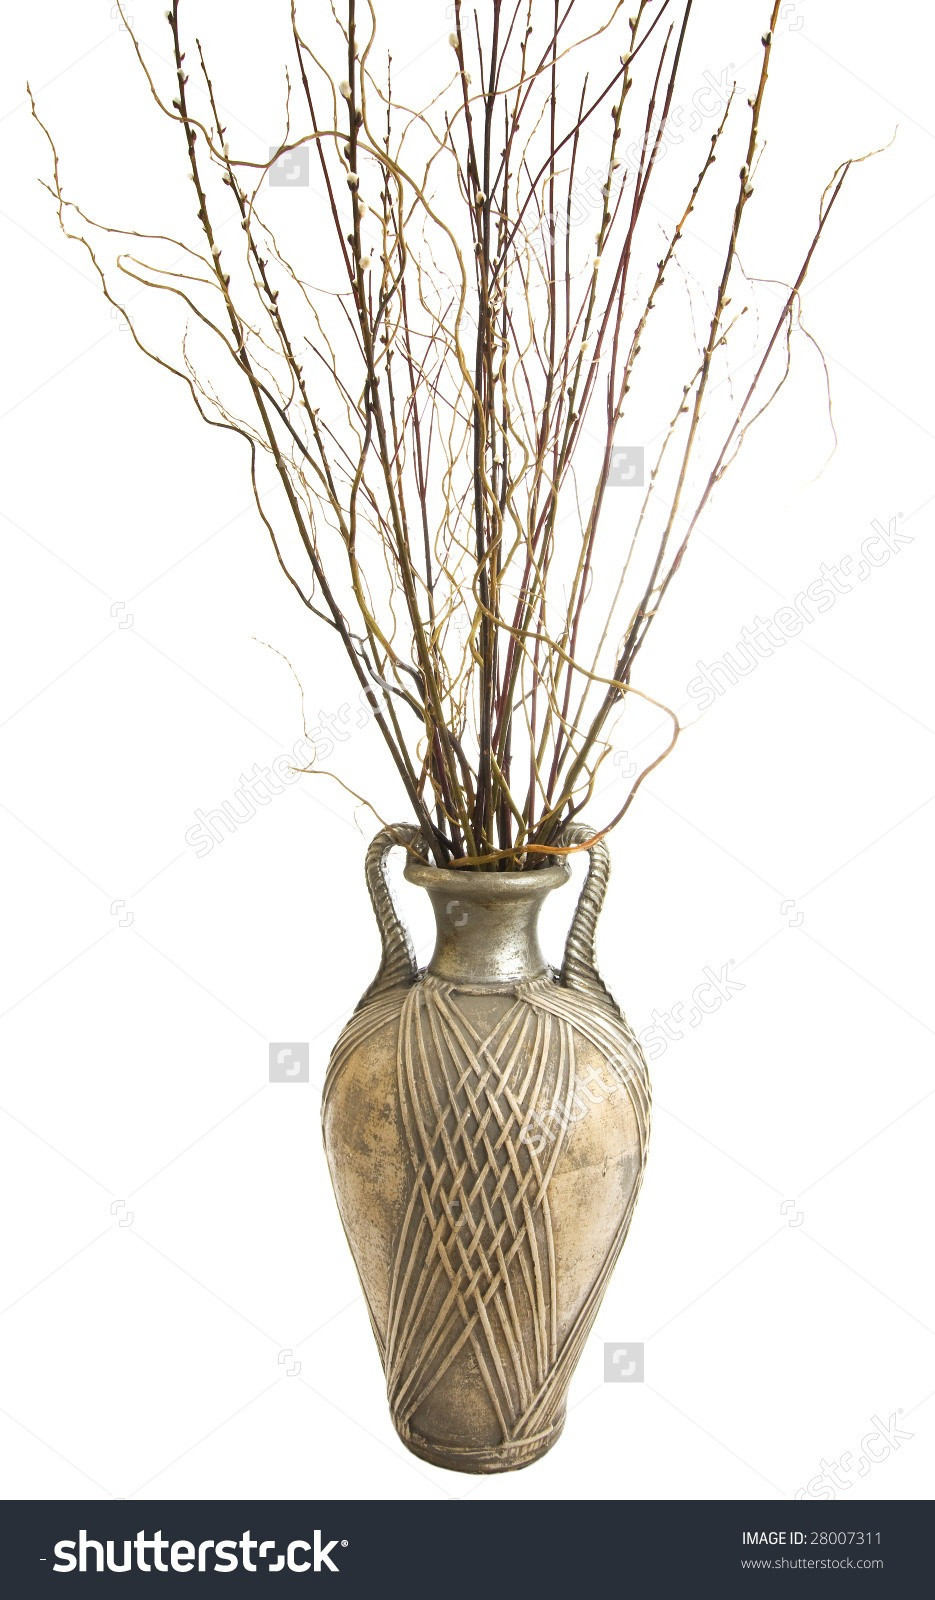 decorative sticks for floor vases of stick lights new vases vase with sticks red in a i 0d 3d model and inside stick lights lovely cgaxis models 63 18ch vases vase with twigs 3d flowering tree in